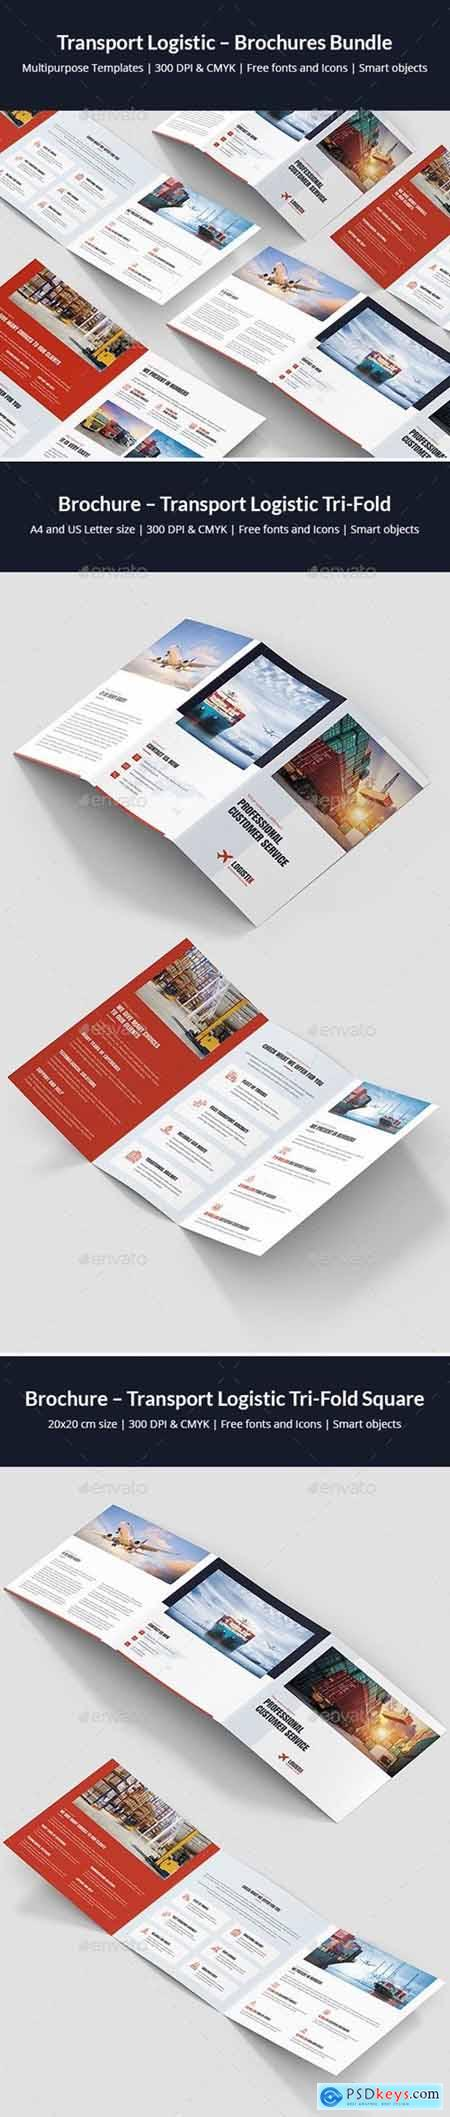 Transport Logistic – Brochures Bundle Print Templates 6 in 1